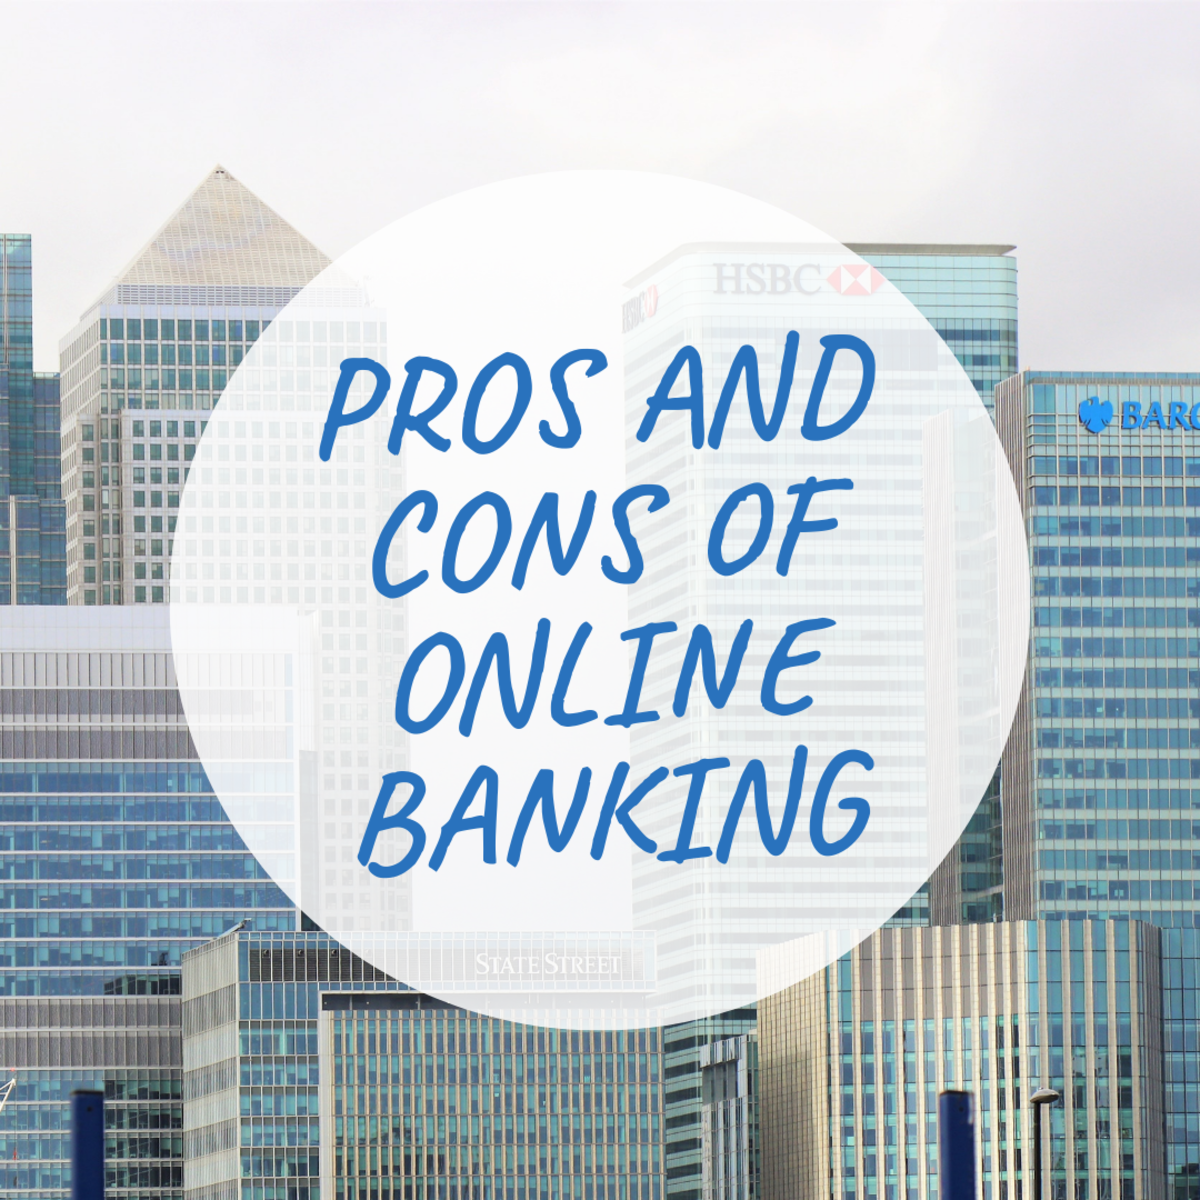 Learn all about the pros and cons of internet banking.